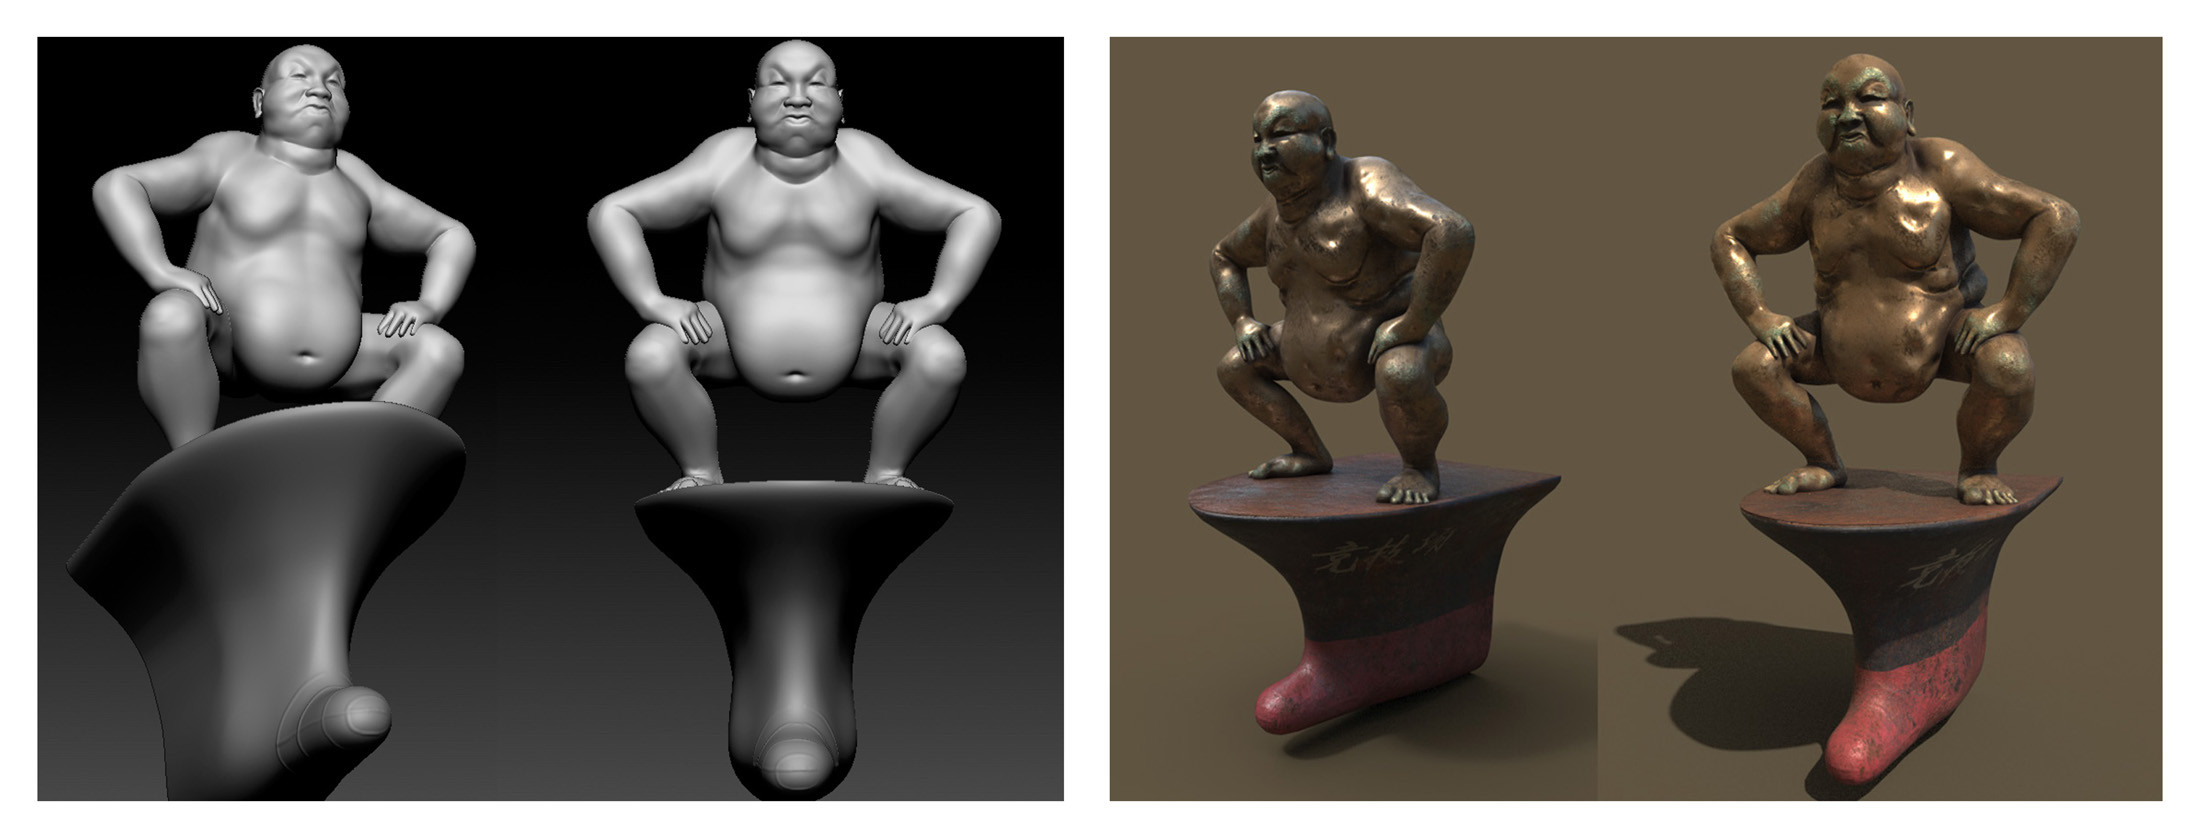 The modelled and textured Sumo-Buddha-Statue for the market scene